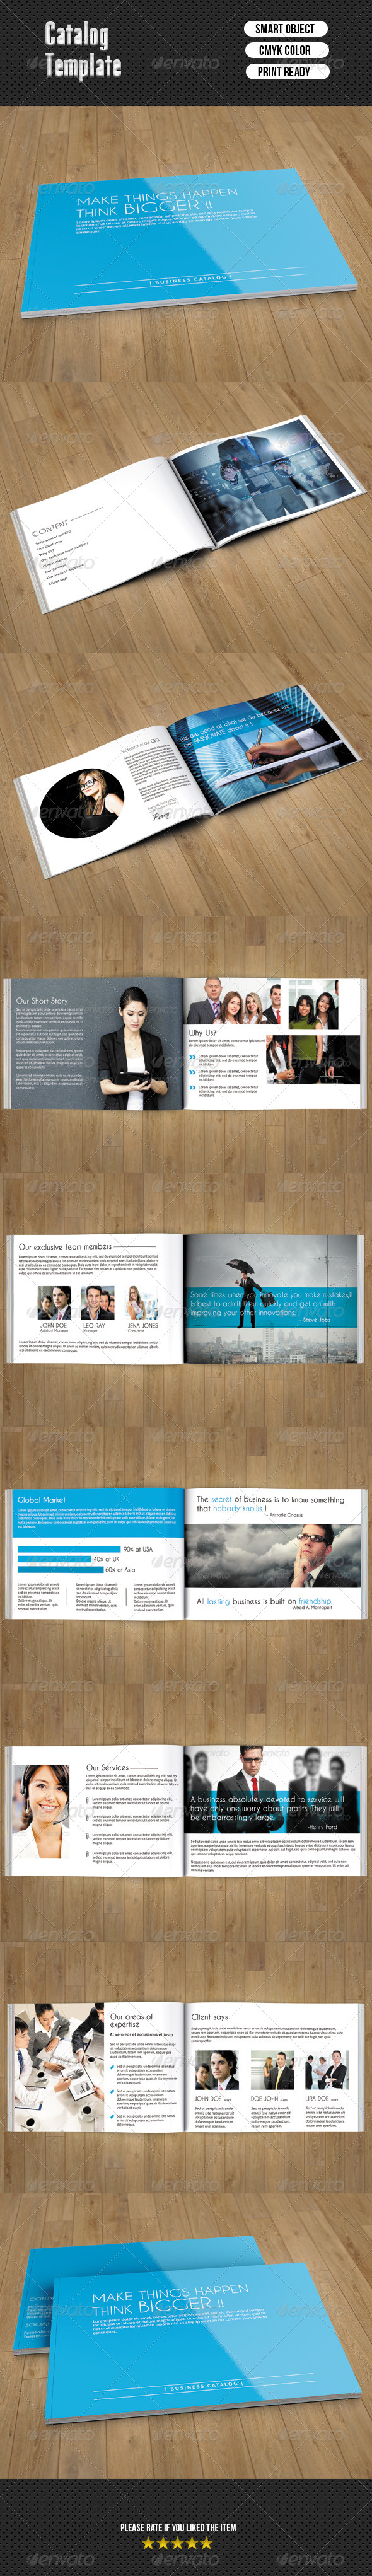 GraphicRiver Business Catalog 7139576